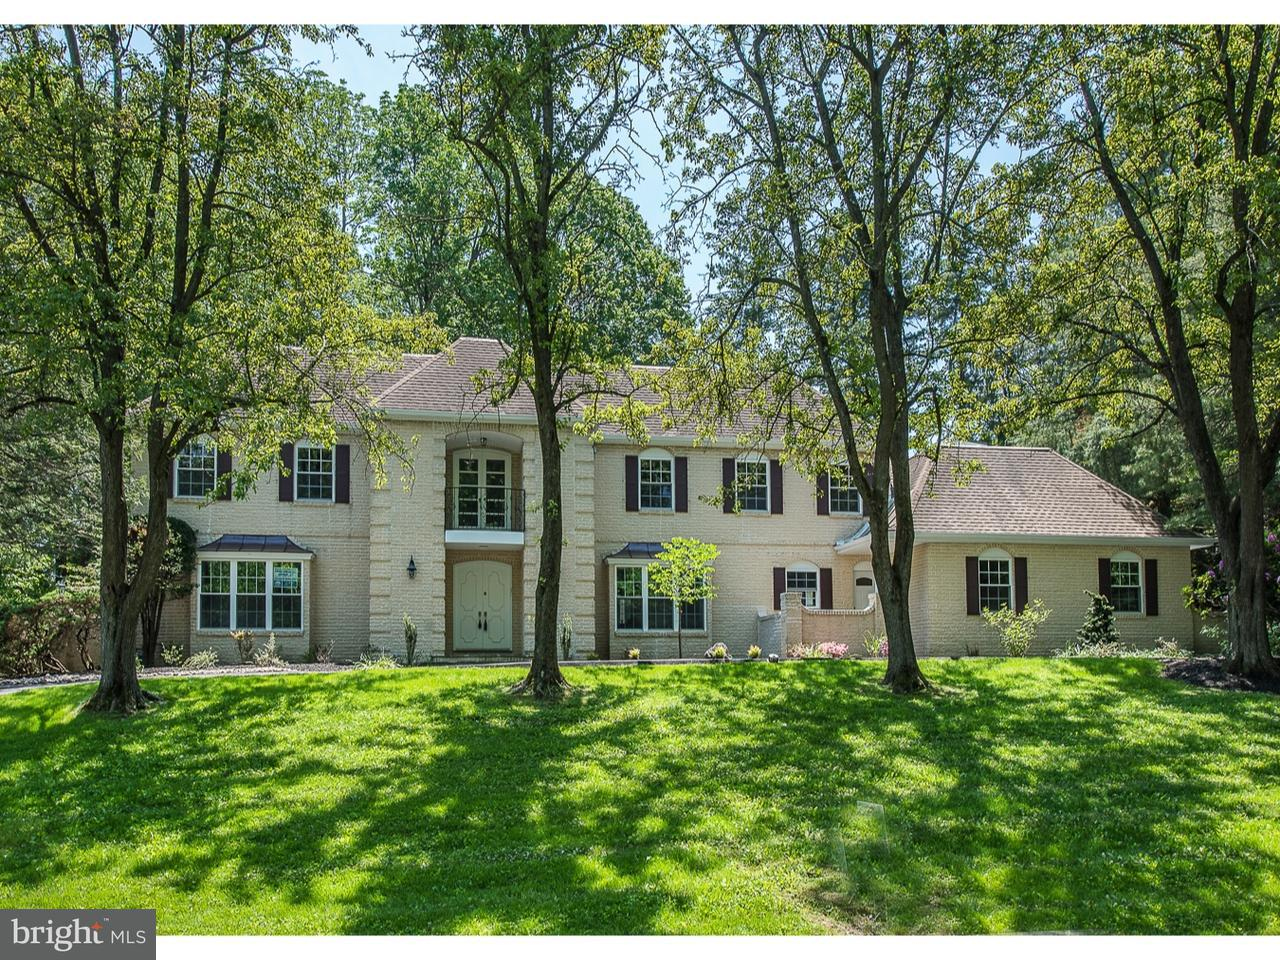 Single Family Home for Sale at 121 QUAKER Lane Haverford, Pennsylvania 19041 United States